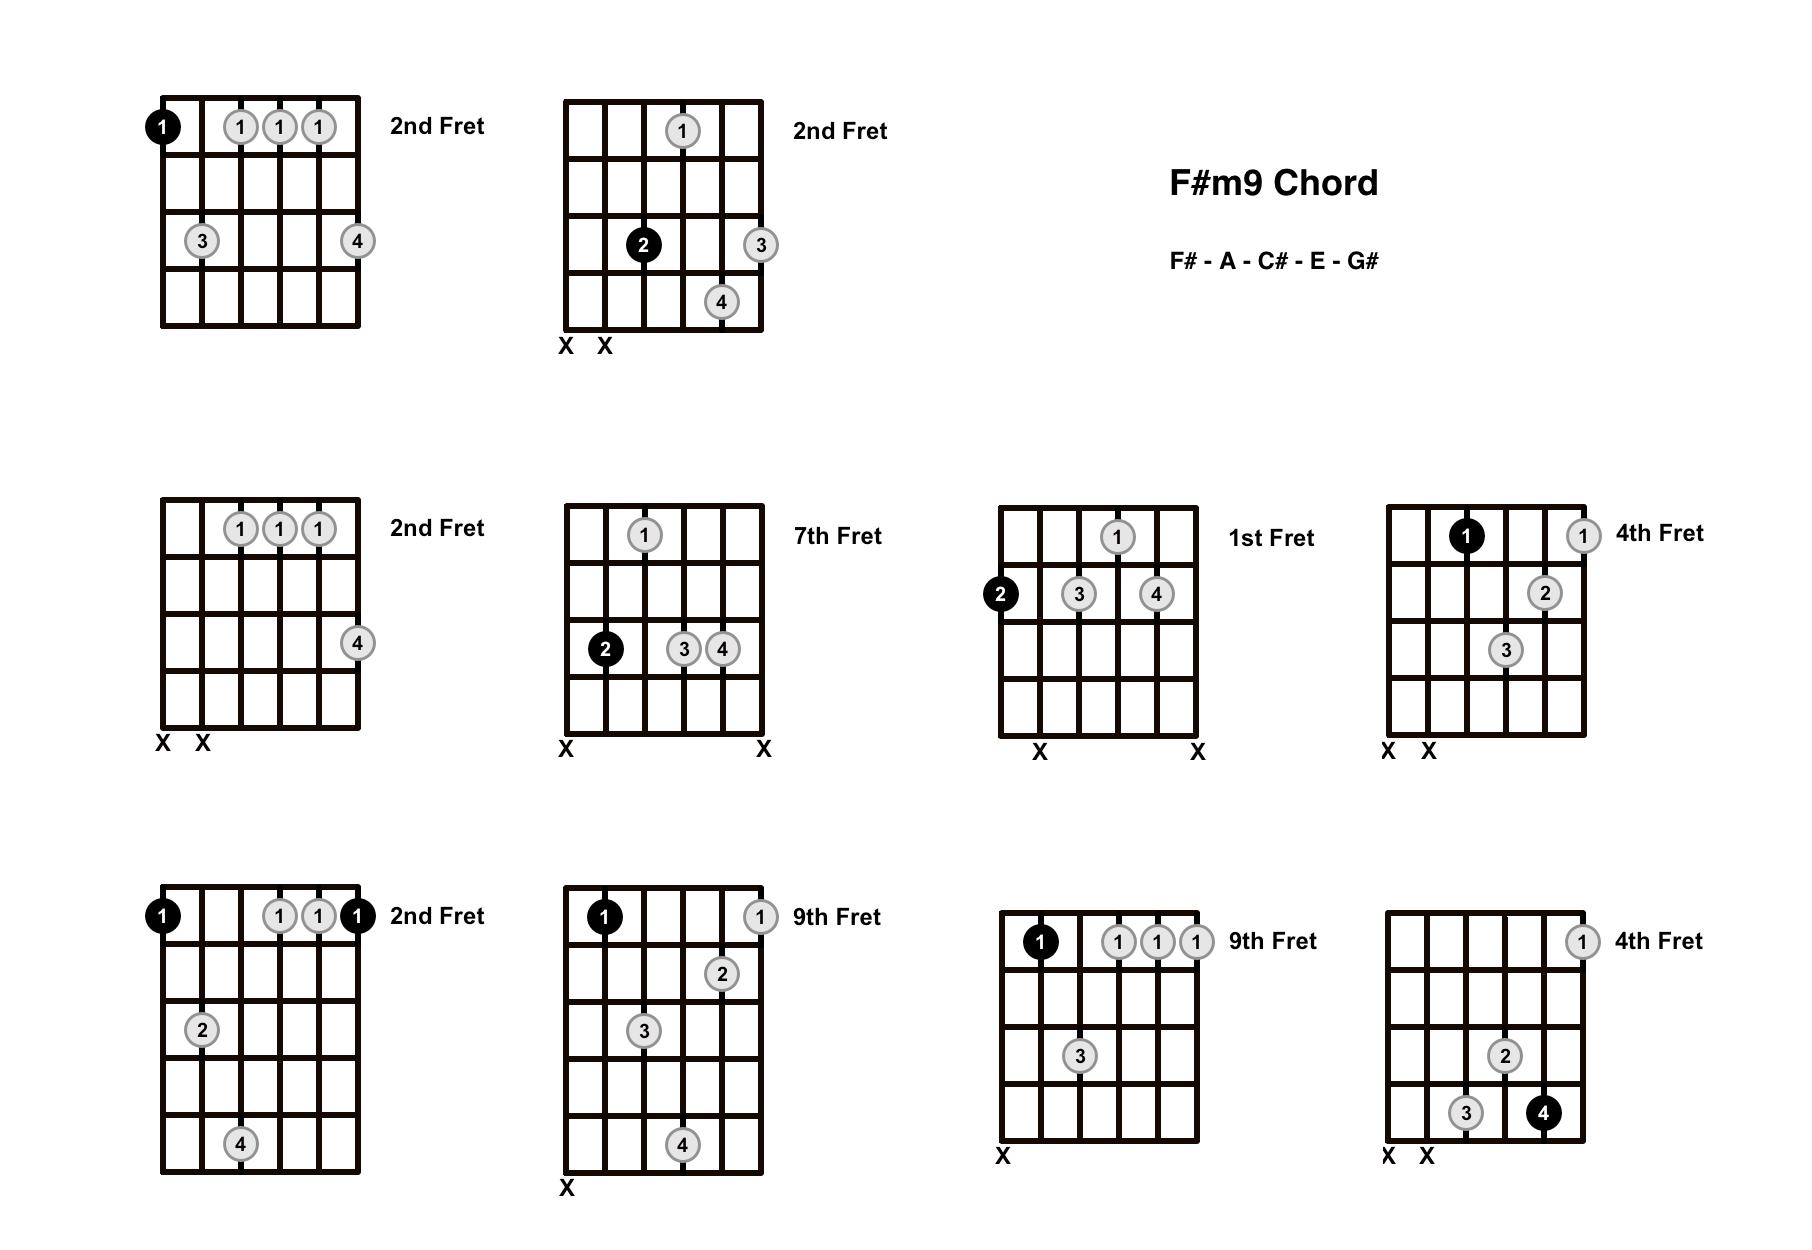 F#m9 Chord On The Guitar (F Sharp Minor 9) – Diagrams, Finger Positions and Theory